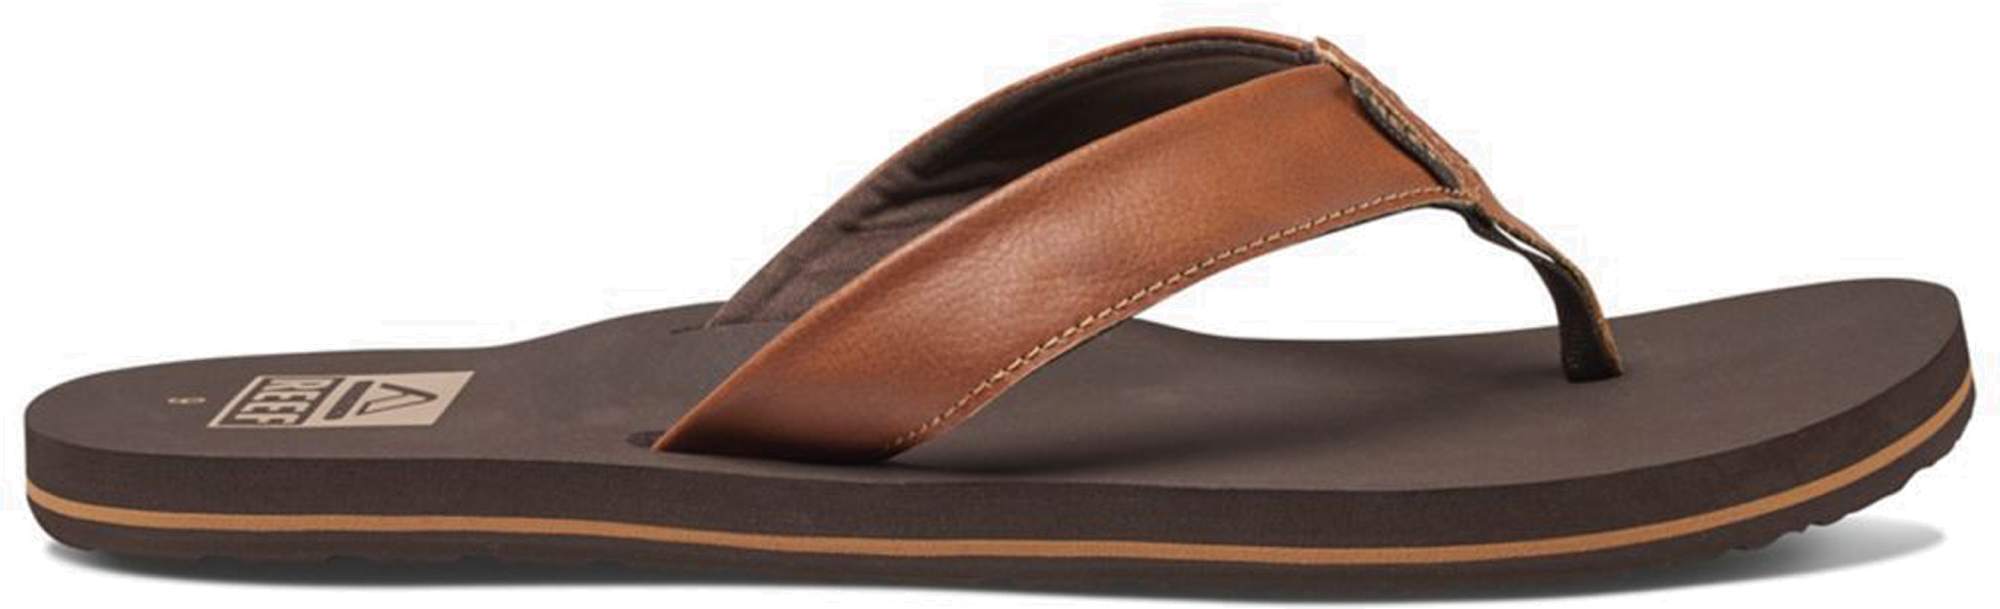 be7cc2ba9500 Mens Reef TWINPIN Brown Vegan Flip Flops Size EU 45 US 12 UK 11. About this  product. Picture 1 of 4  Picture 2 of 4  Picture 3 of 4  Picture 4 of 4